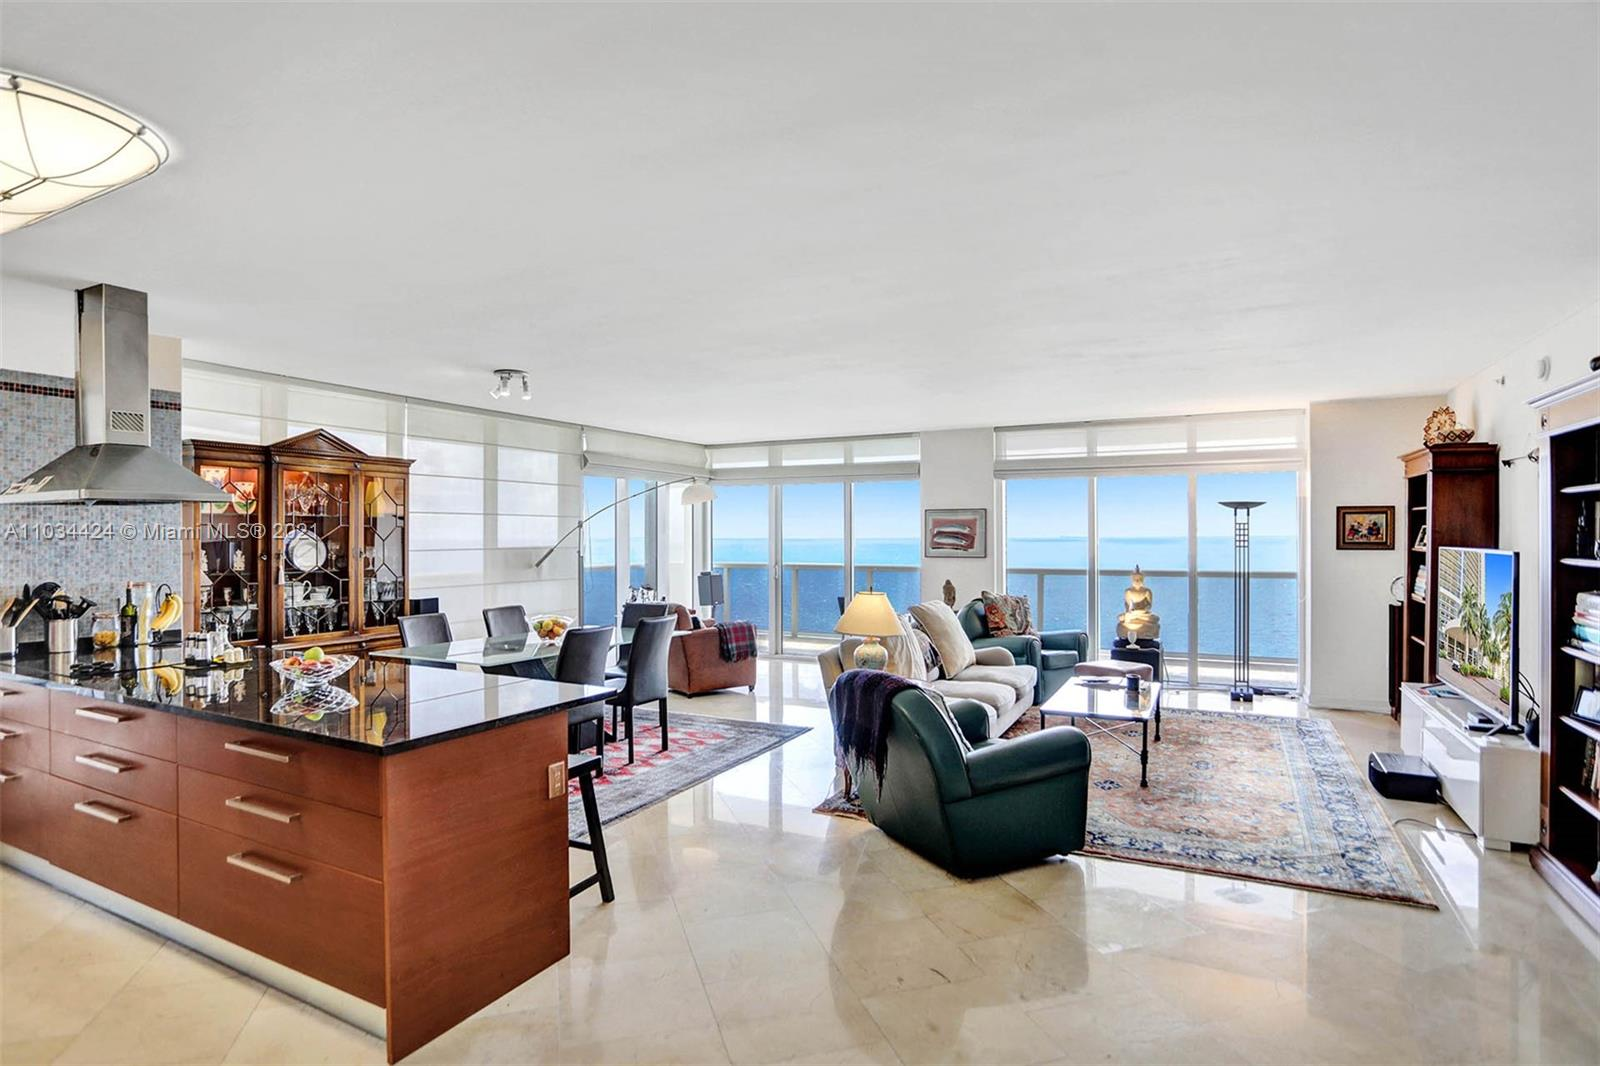 From the moment you walk in enjoy incredible breathtaking views of the ocean! This spacious residence features 3 bedrooms, 3.5 bathrooms with 2,078 interior SF and direct oceanfront views from every room, floor to ceiling glass sliding doors, and a magnificent 586 SF wrap-around balcony. Other features include marble floors throughout, a European-style kitchen with stunning granite countertops, Kitchen Aid appliances and tons of storage cabinets. Live at the Beach Club tower 1 this condominium features 5-Star resort-like amenities, full-time concierge and security, 24-hour valet, 5 warmed pools, and a 50,000 SF fitness center and spa.